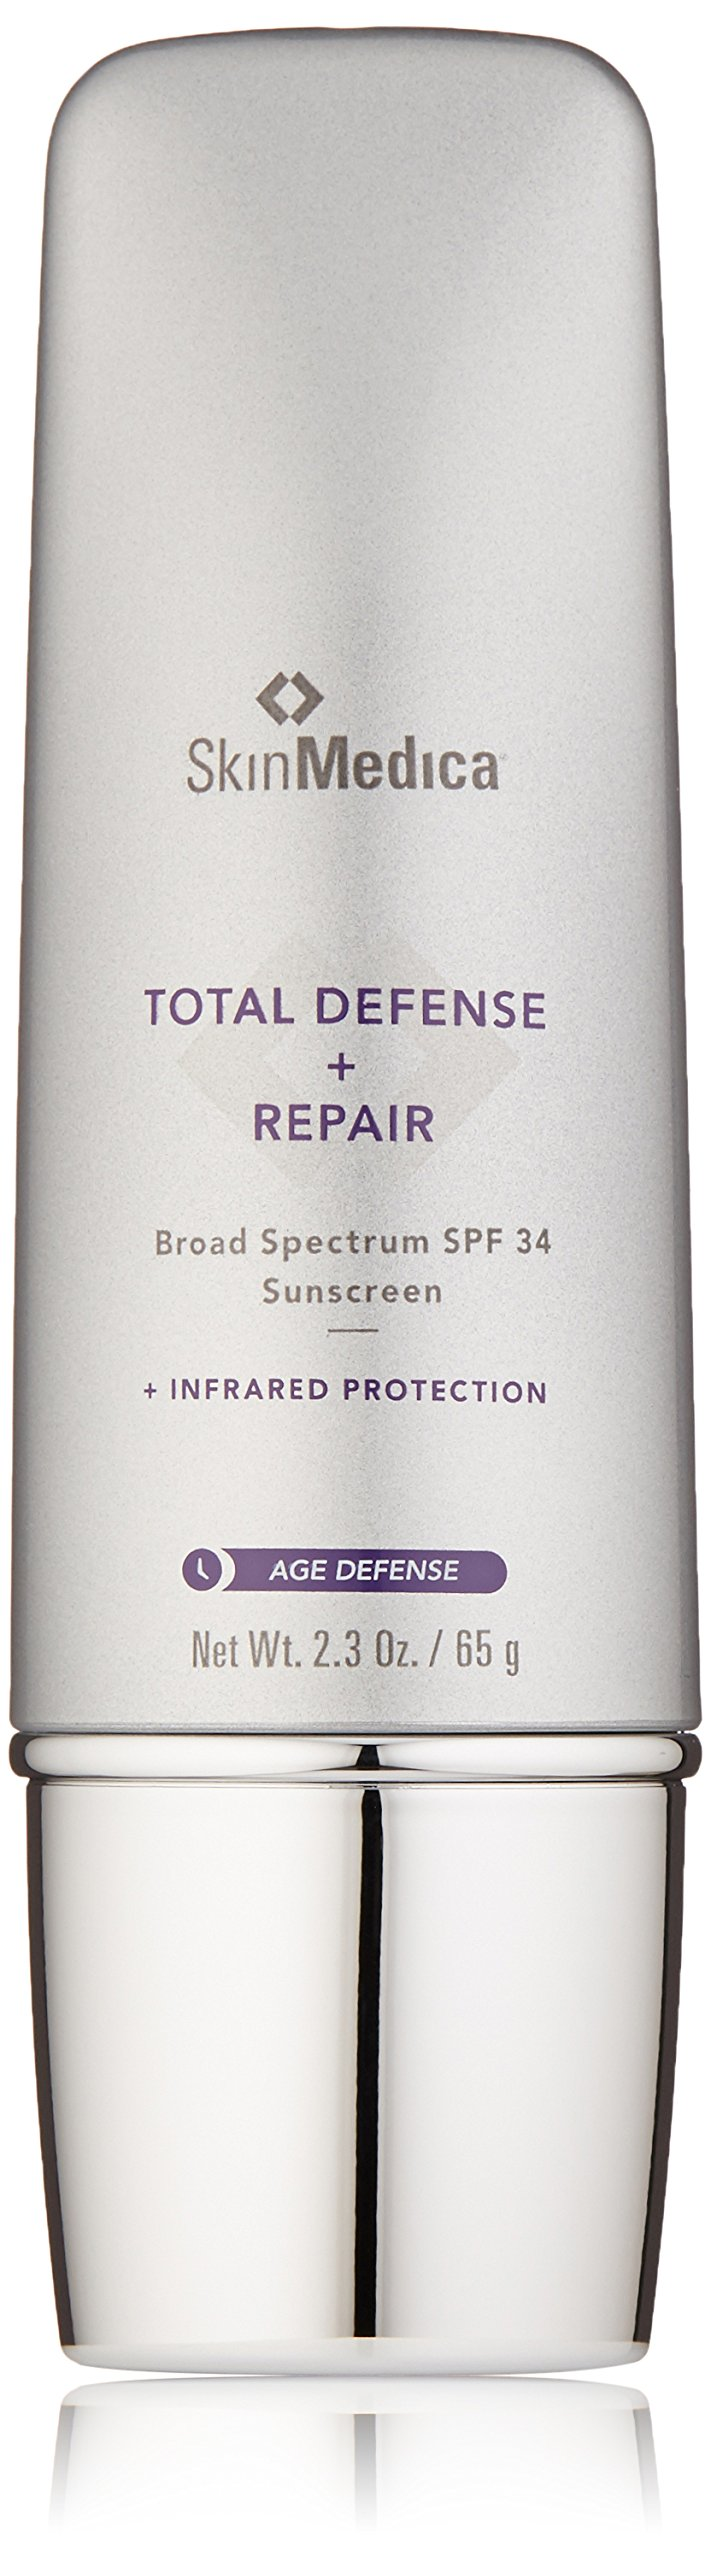 SkinMedica Total Defense Plus Repair Sunscreen, SPF 34, 2.3 oz.